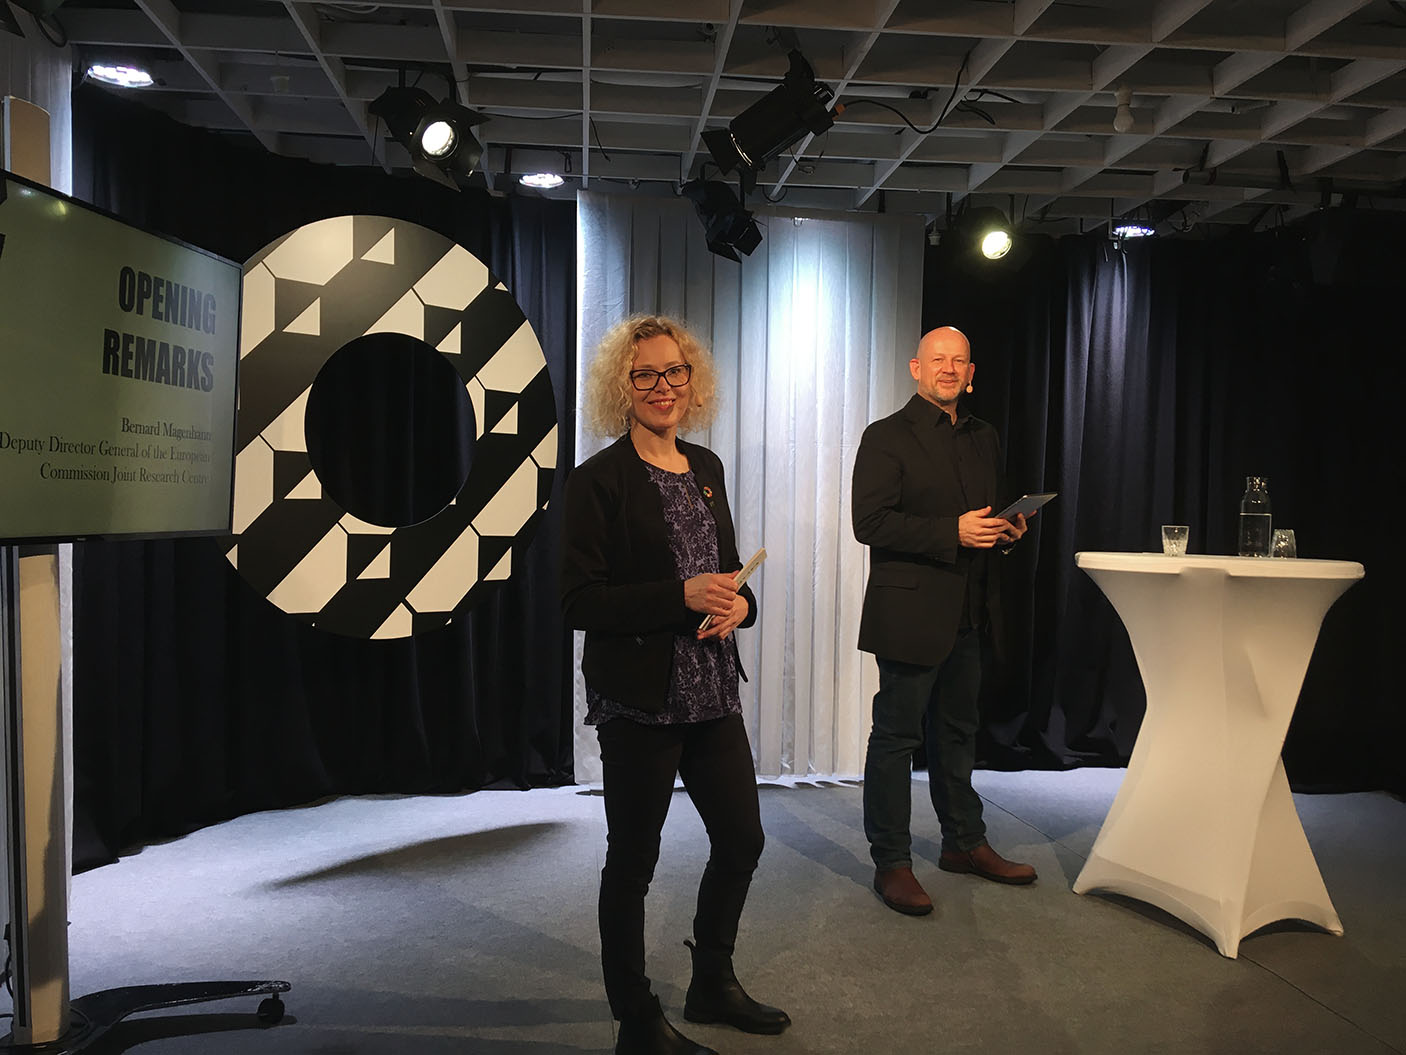 A woman and a man presenting on stage at 2nd European Social Progress Cities Summit